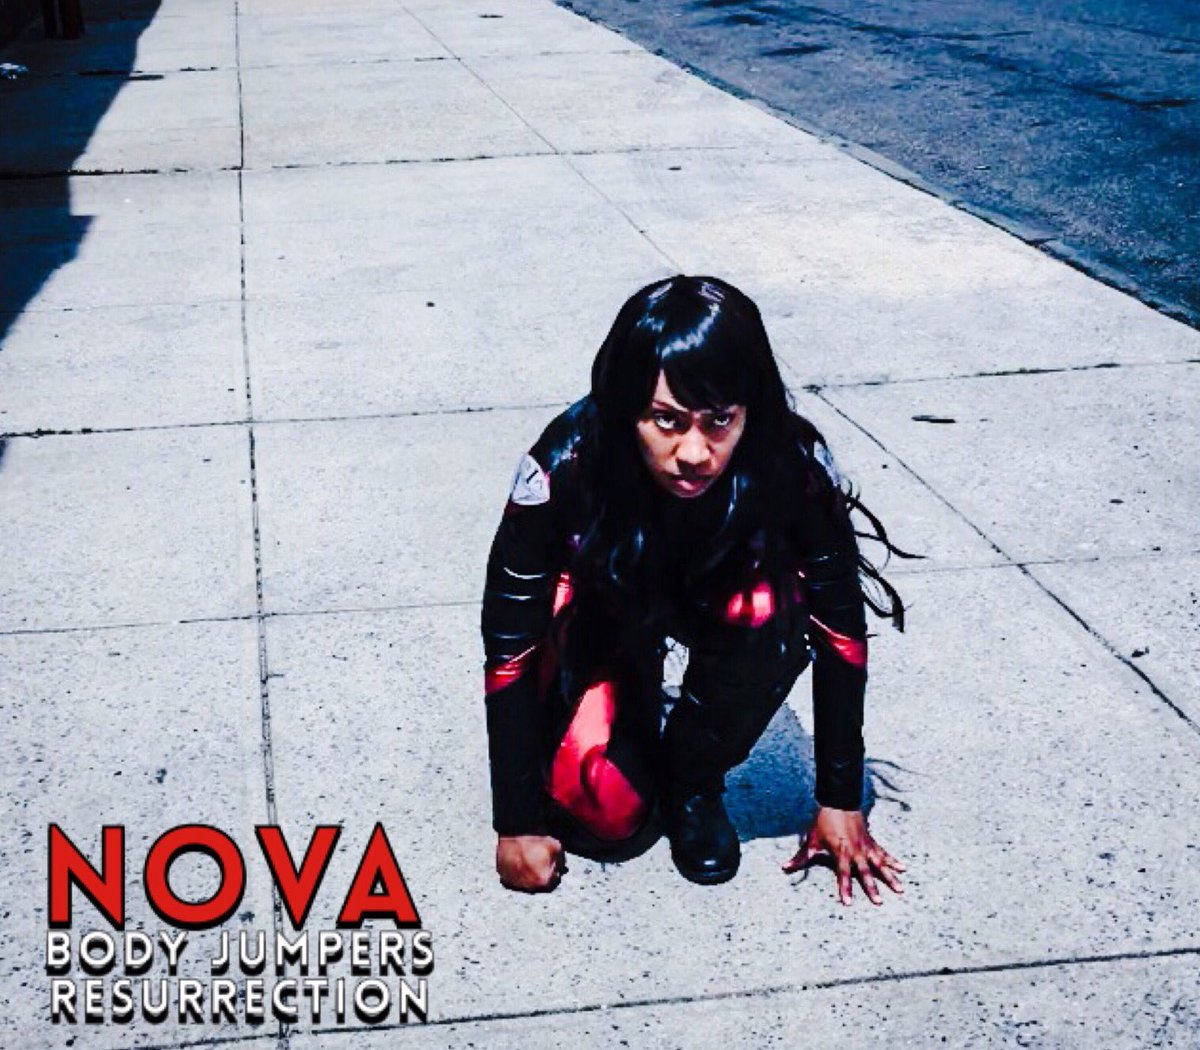 Nova Body Jumpers Resurrection Ep.3 coming soon #likeforfollow likeforlikeback  @PromoteHorror @Robandslimshow  #comicbookhour @KnowingFlame<br>http://pic.twitter.com/ZdH6W3naIg